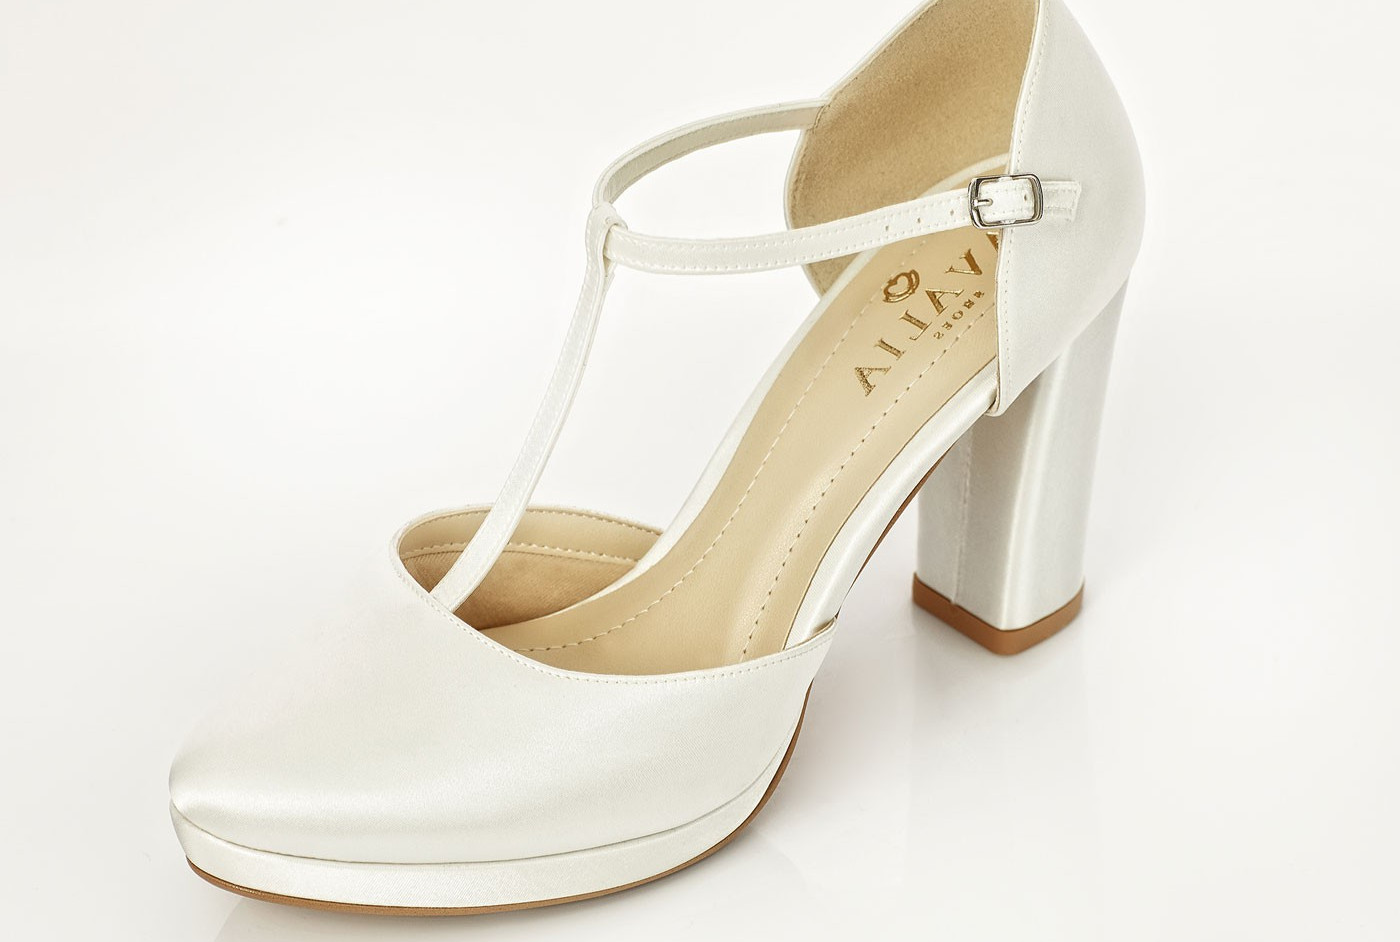 CoCo Wedding Shoes